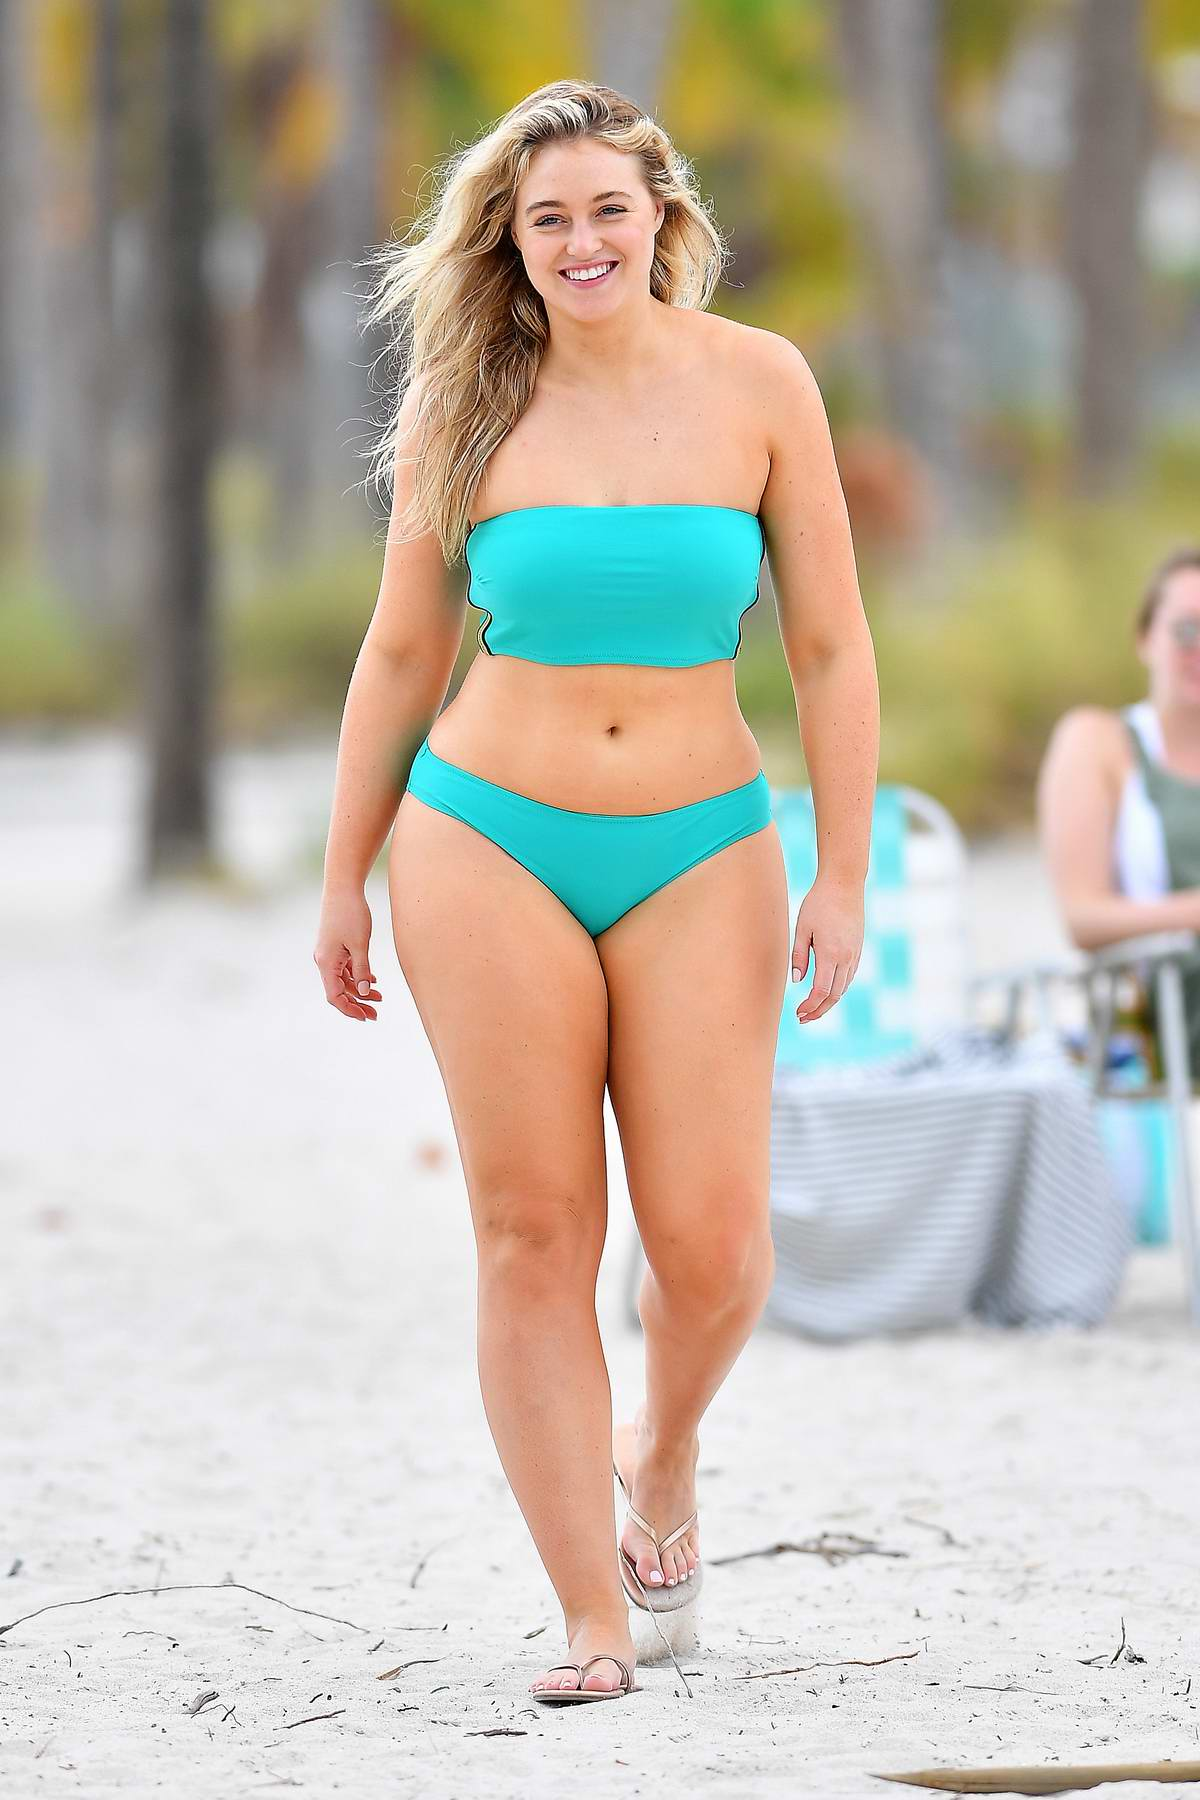 Iskra Lawrence rocks teal bikini and swimsuit during a beach photoshoot for Aerie in Key Biscayne, Florida - Day 2 - Set 02